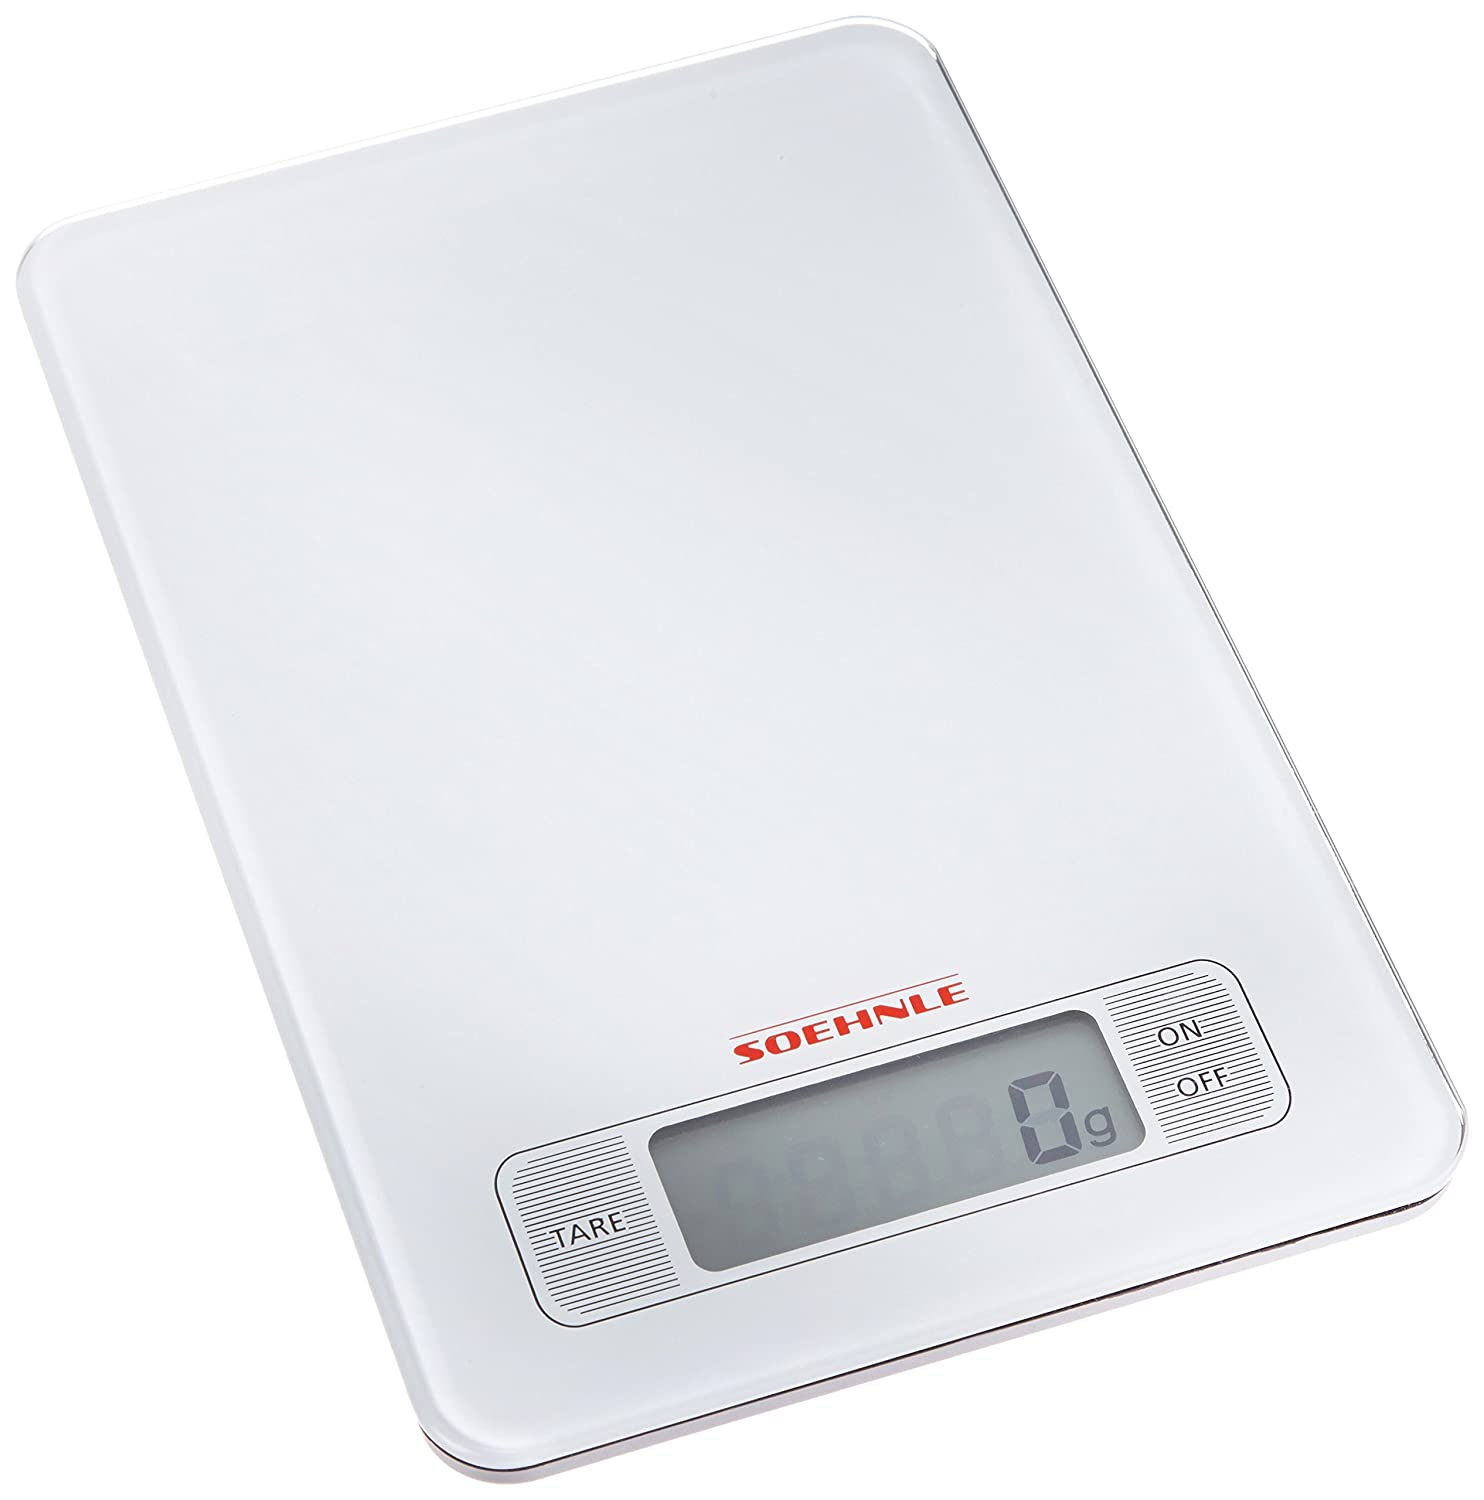 Small Kitchen Weighing Scales Soehnle Attraction Stainless Steel Kitchen Weighing Scale Amazon